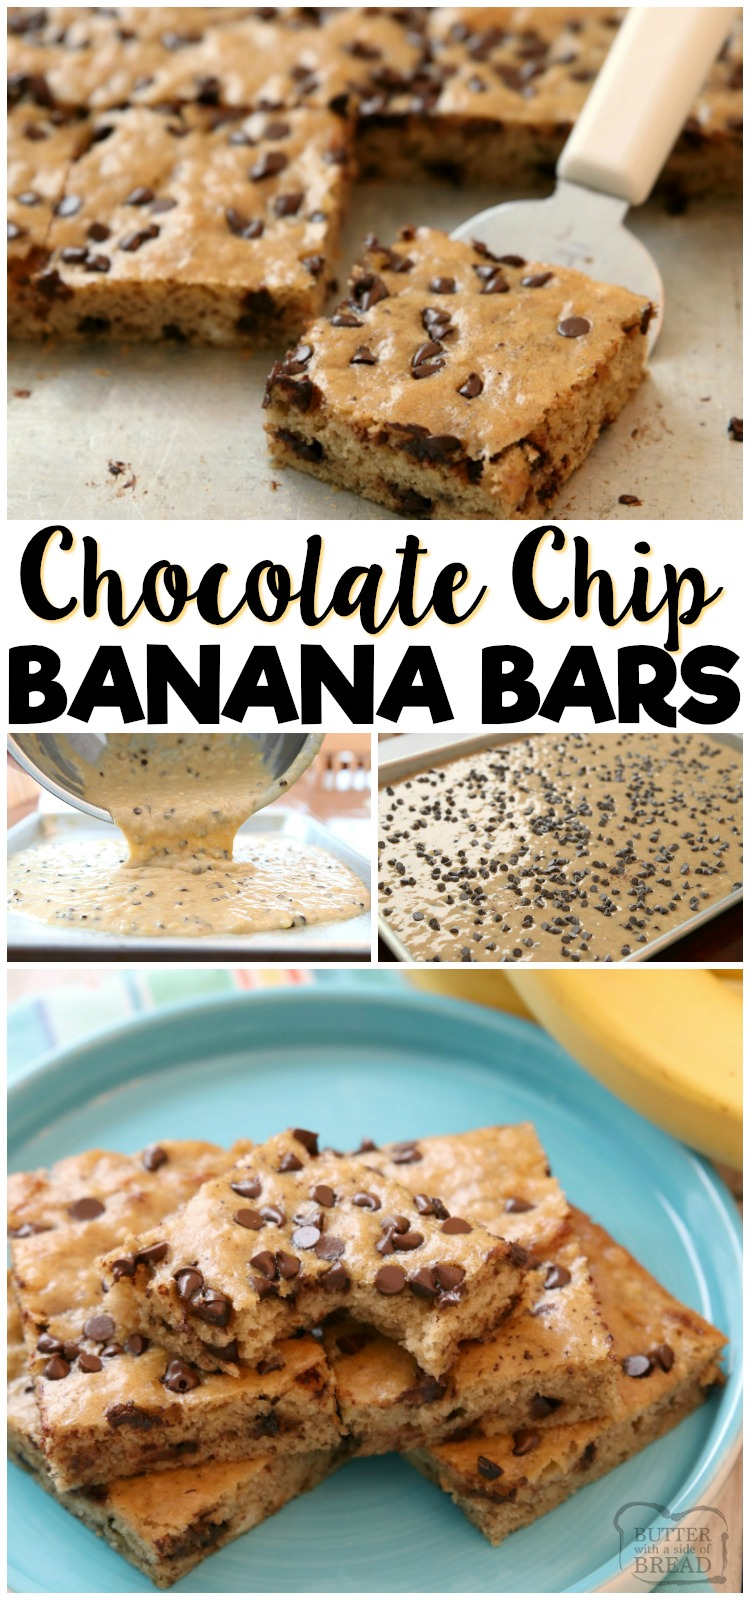 Chocolate Chip Banana Bars are a simple & delicious ripe banana recipe that's even better than banana bread! Great for breakfast, lunch and even dessert! Check out all the 5 star reviews- everyone raves about these Chocolate Chip Banana Bars! #banana #recipe #dessert #chocolatechip #ripebananas #bananas #baking #bananabread from BUTTER WITH A SIDE OF BREAD